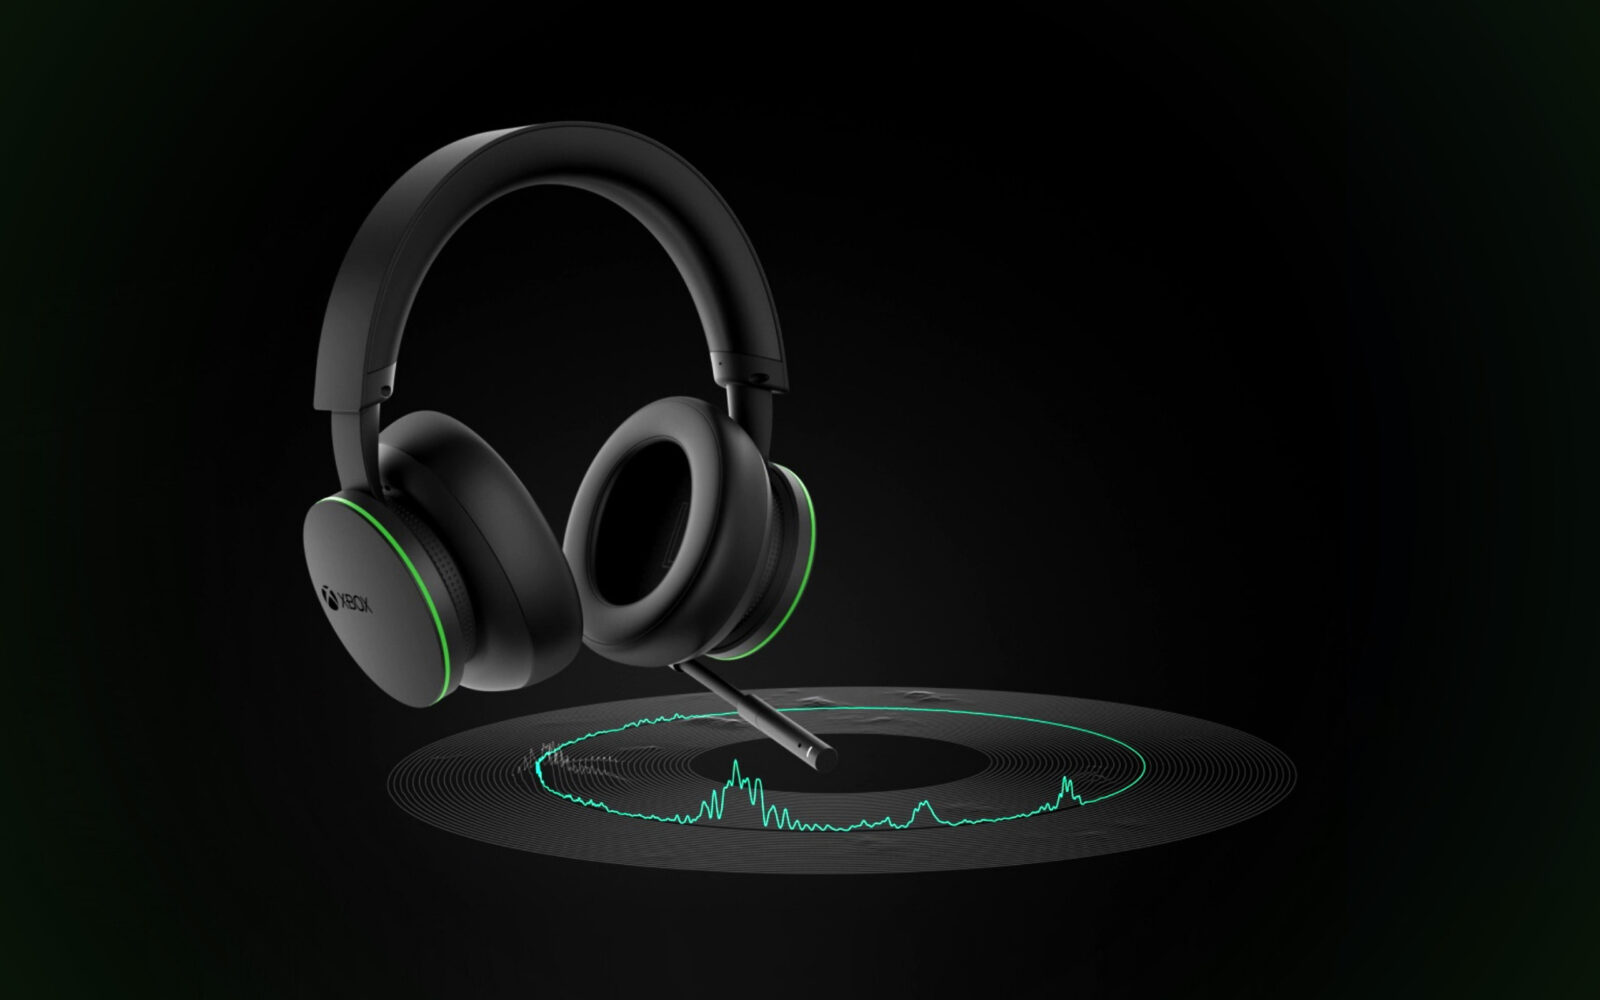 Crystal clear audio during in game voice chat with the Xbox Wireless Headphones